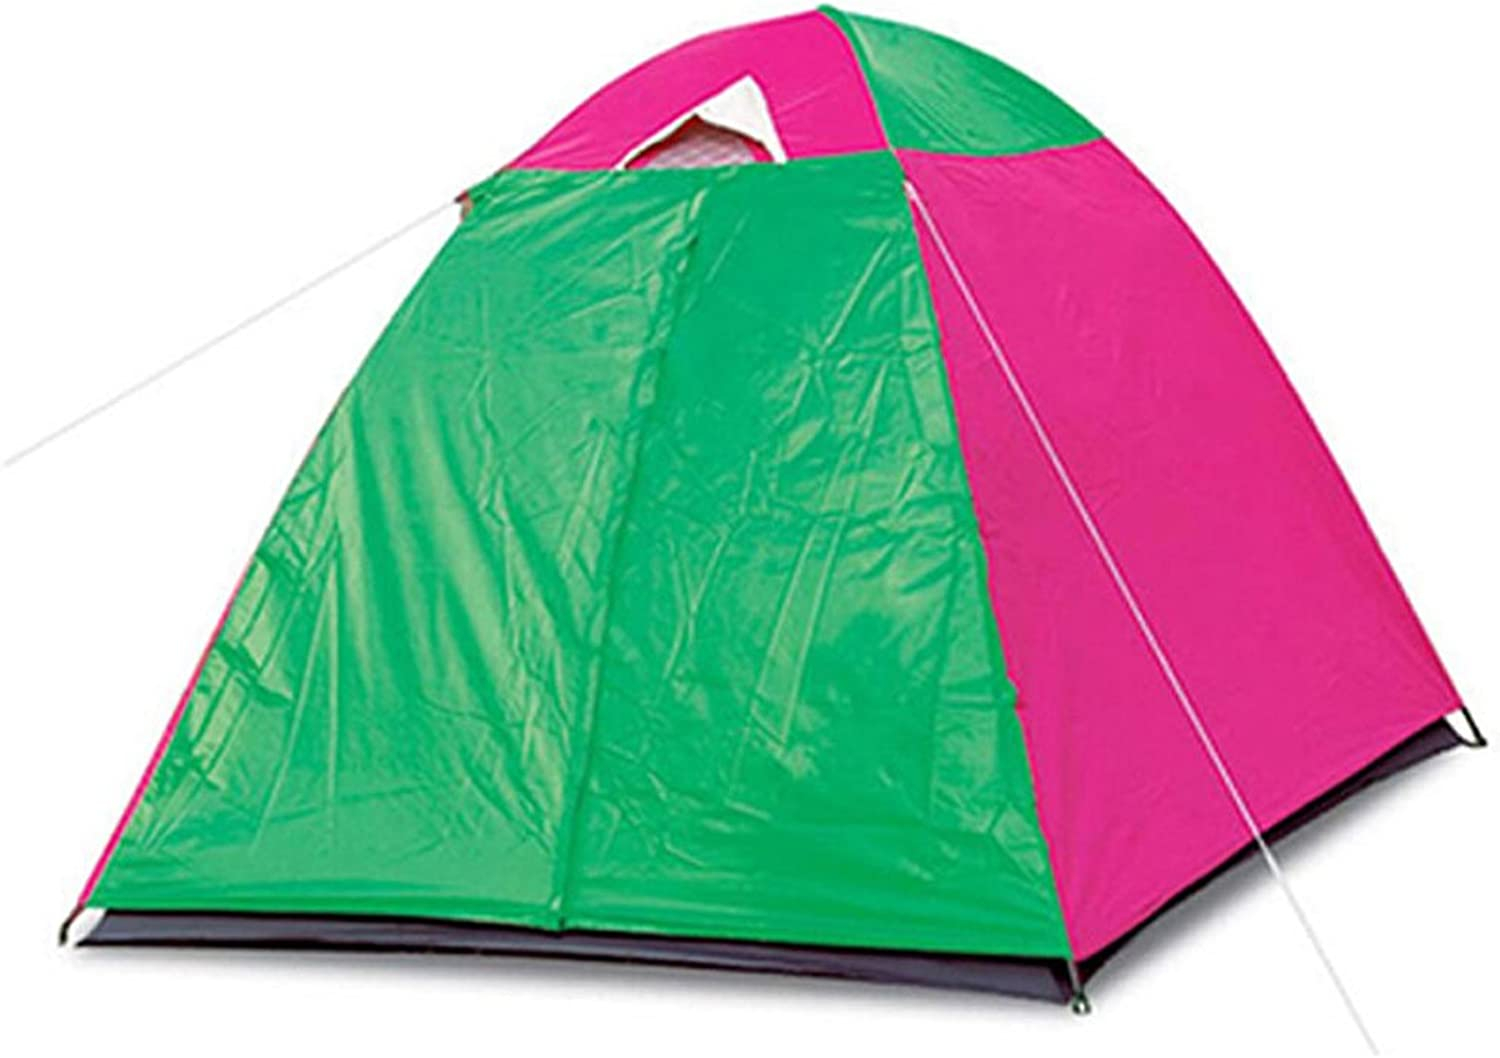 Doublelayer Tents 56 People Camping Leisure Tent Rainproof Windproof Family Outdoor Tent